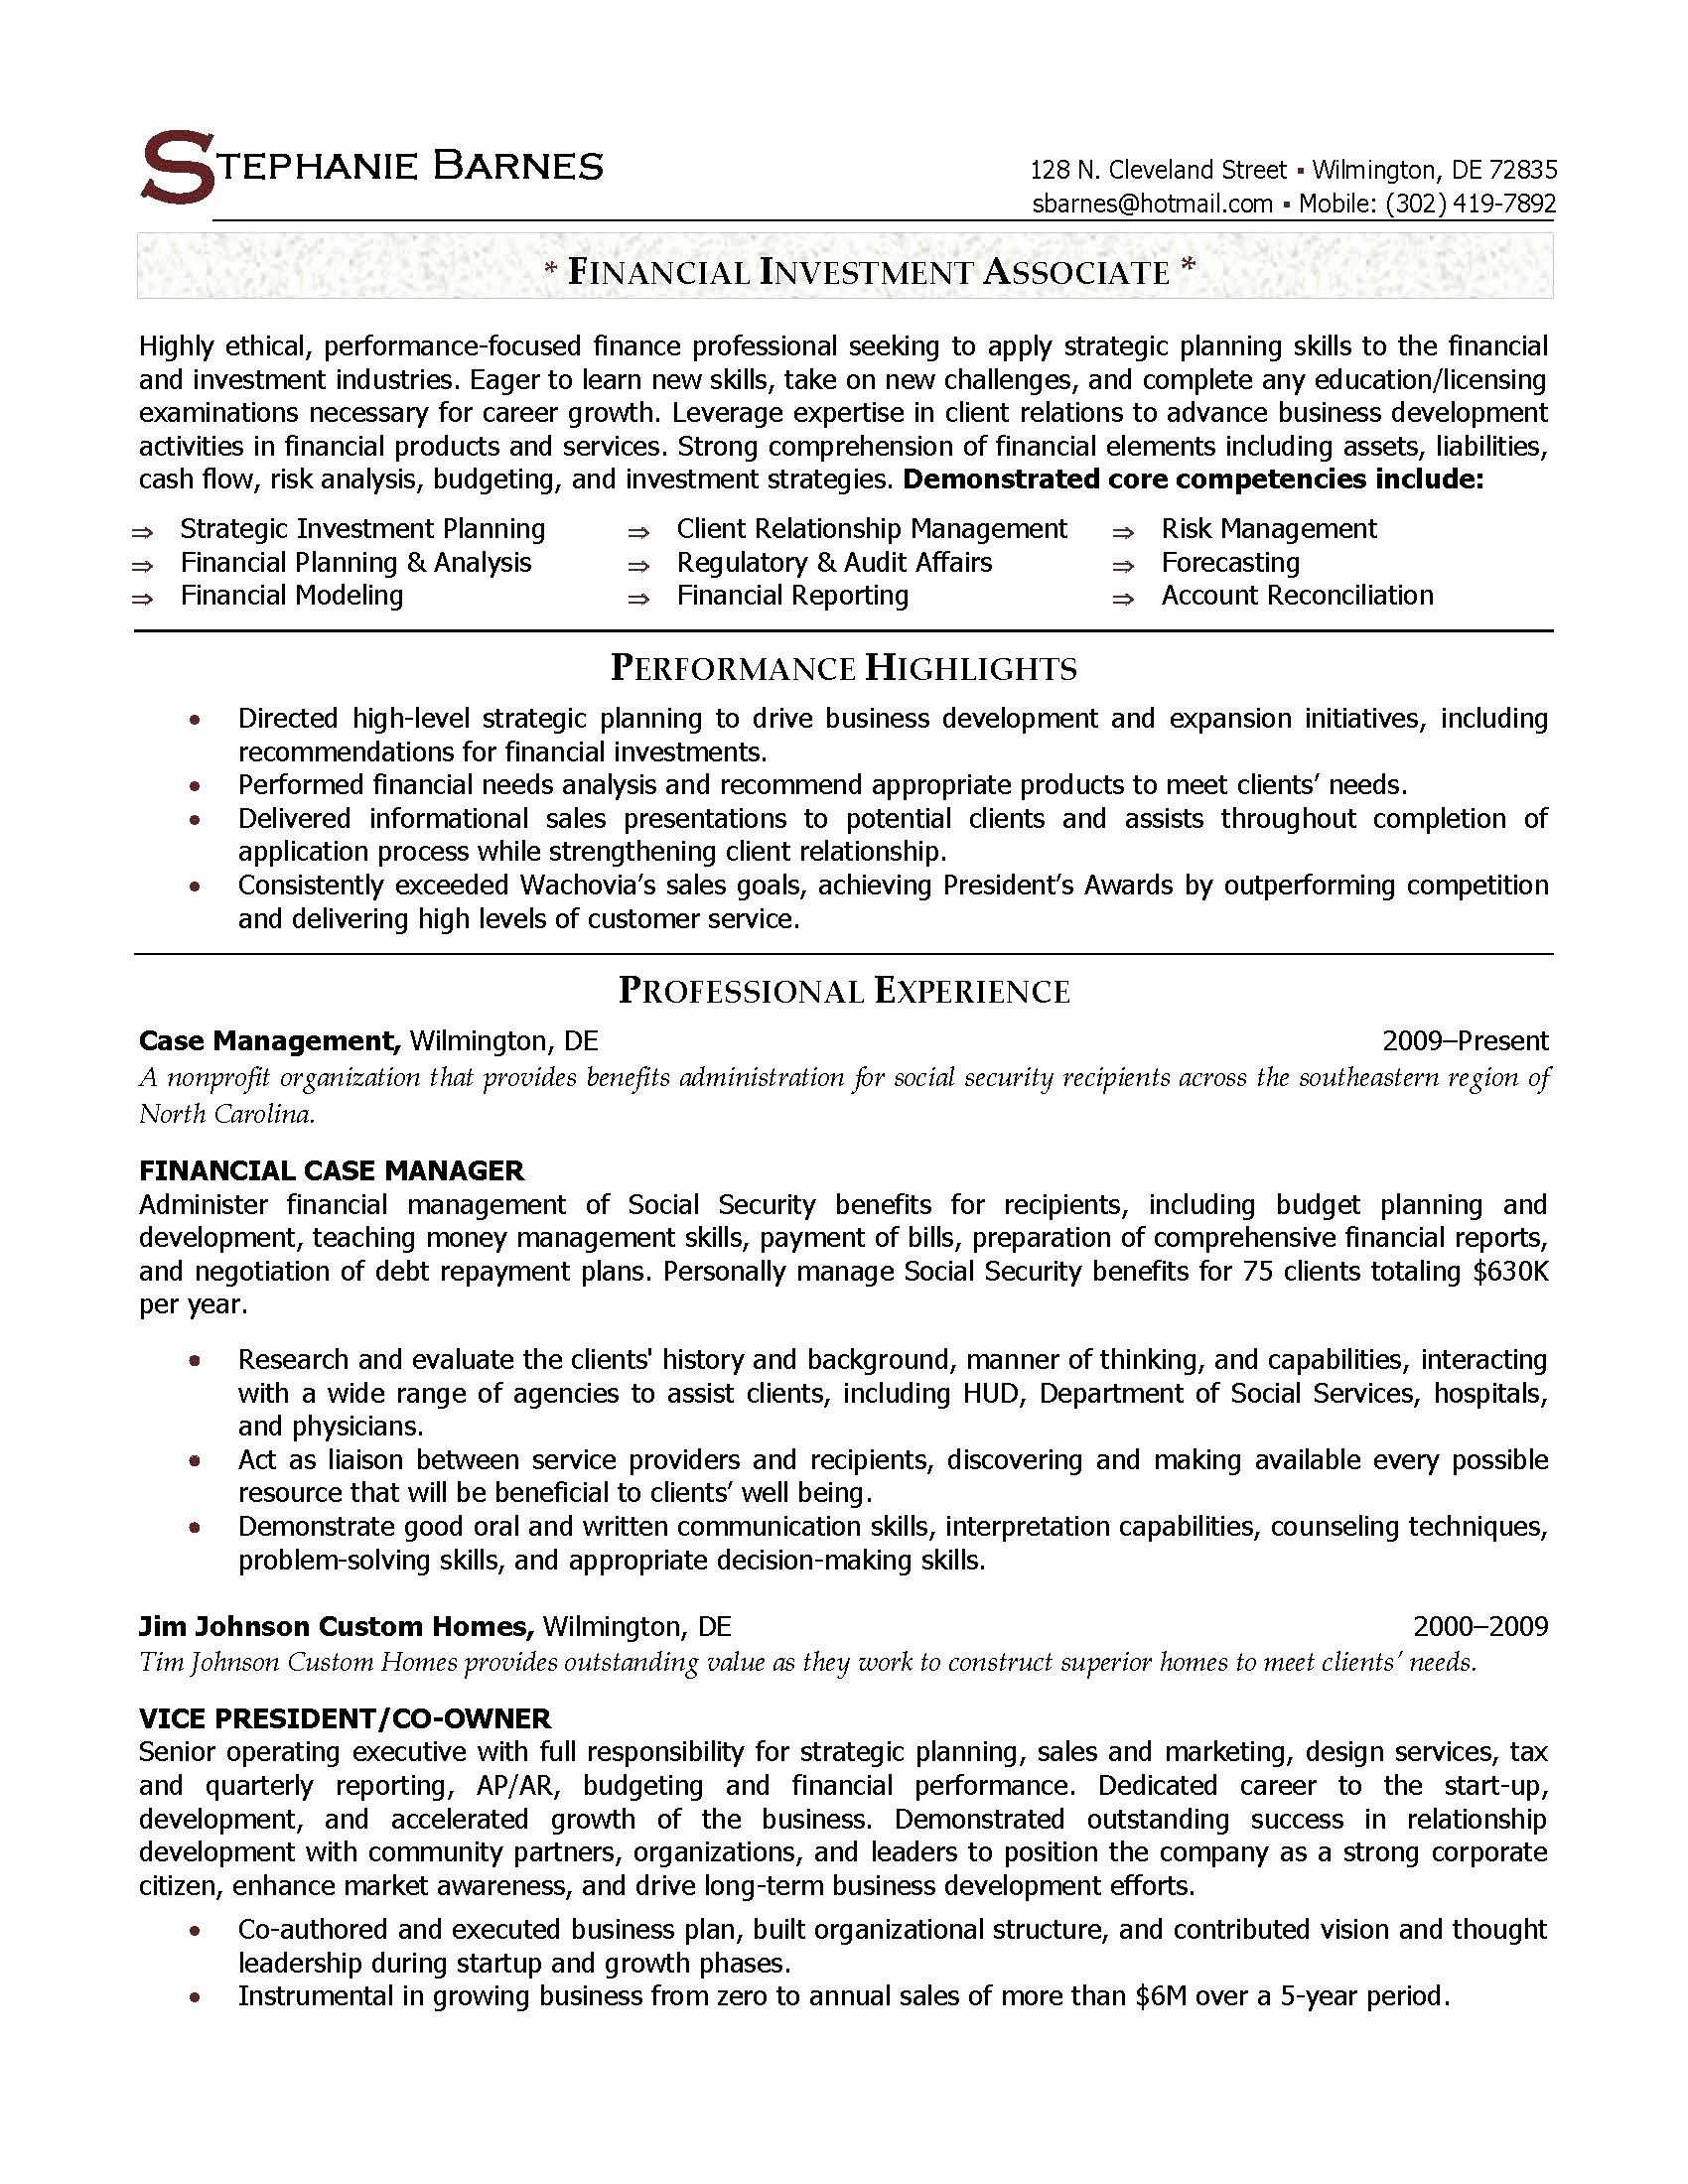 30 Accounts Payable And Receivable Resume In 2020 Job Resume